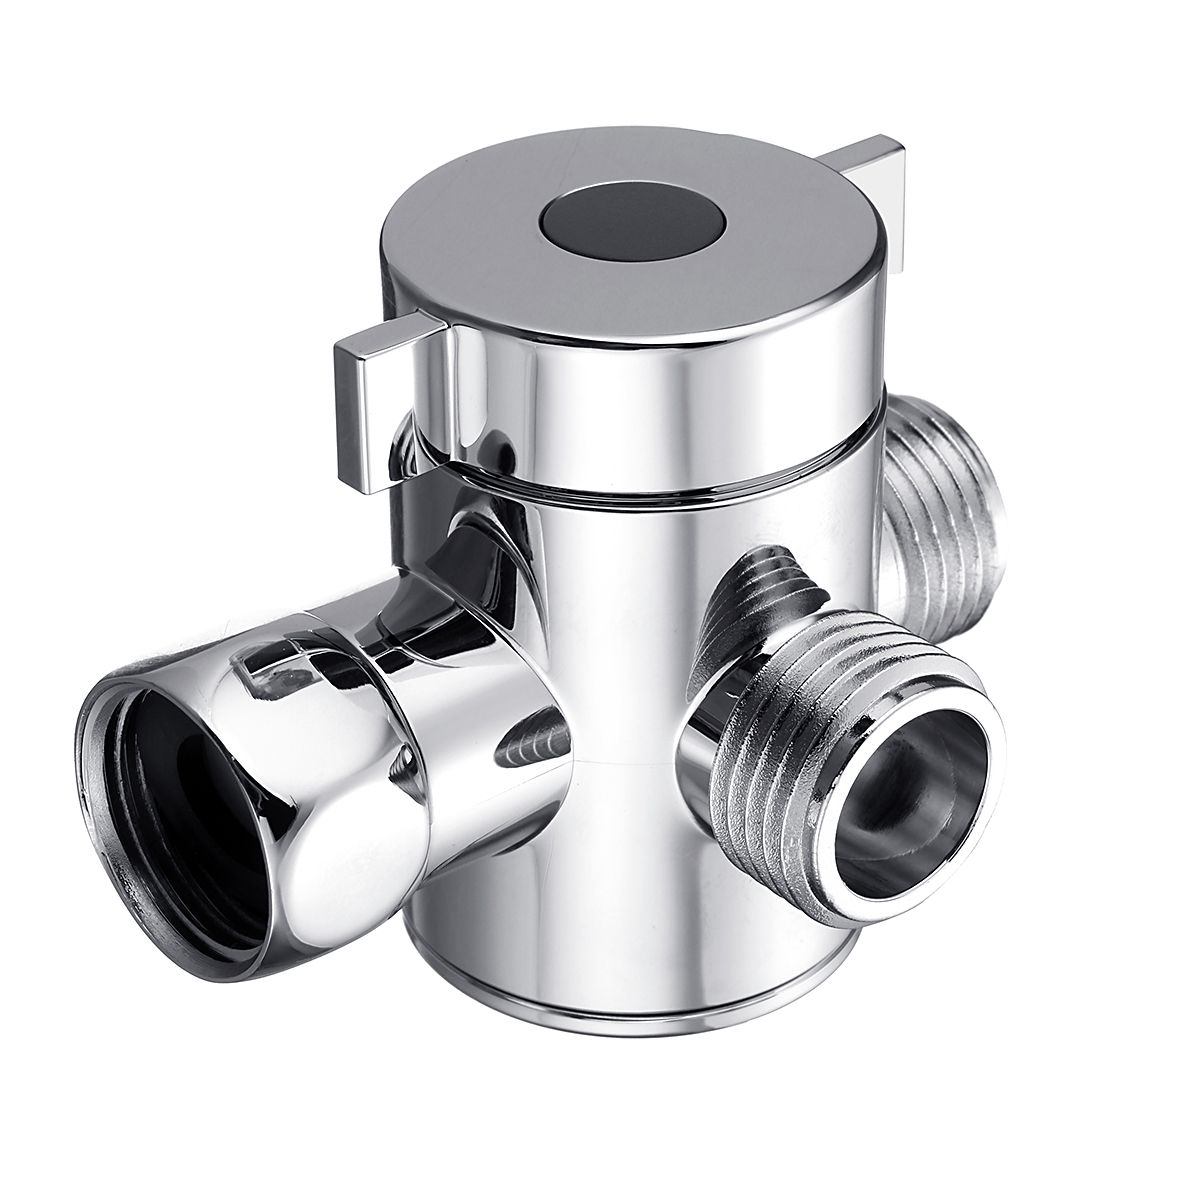 Multifunction 3 Way Shower Head Diverter Valve G1 2 Three Function Switch Adapter Valve Faucets From Home And Garden On Banggood Com Shower Heads Adjustable Shower Arm Faucet Accessories